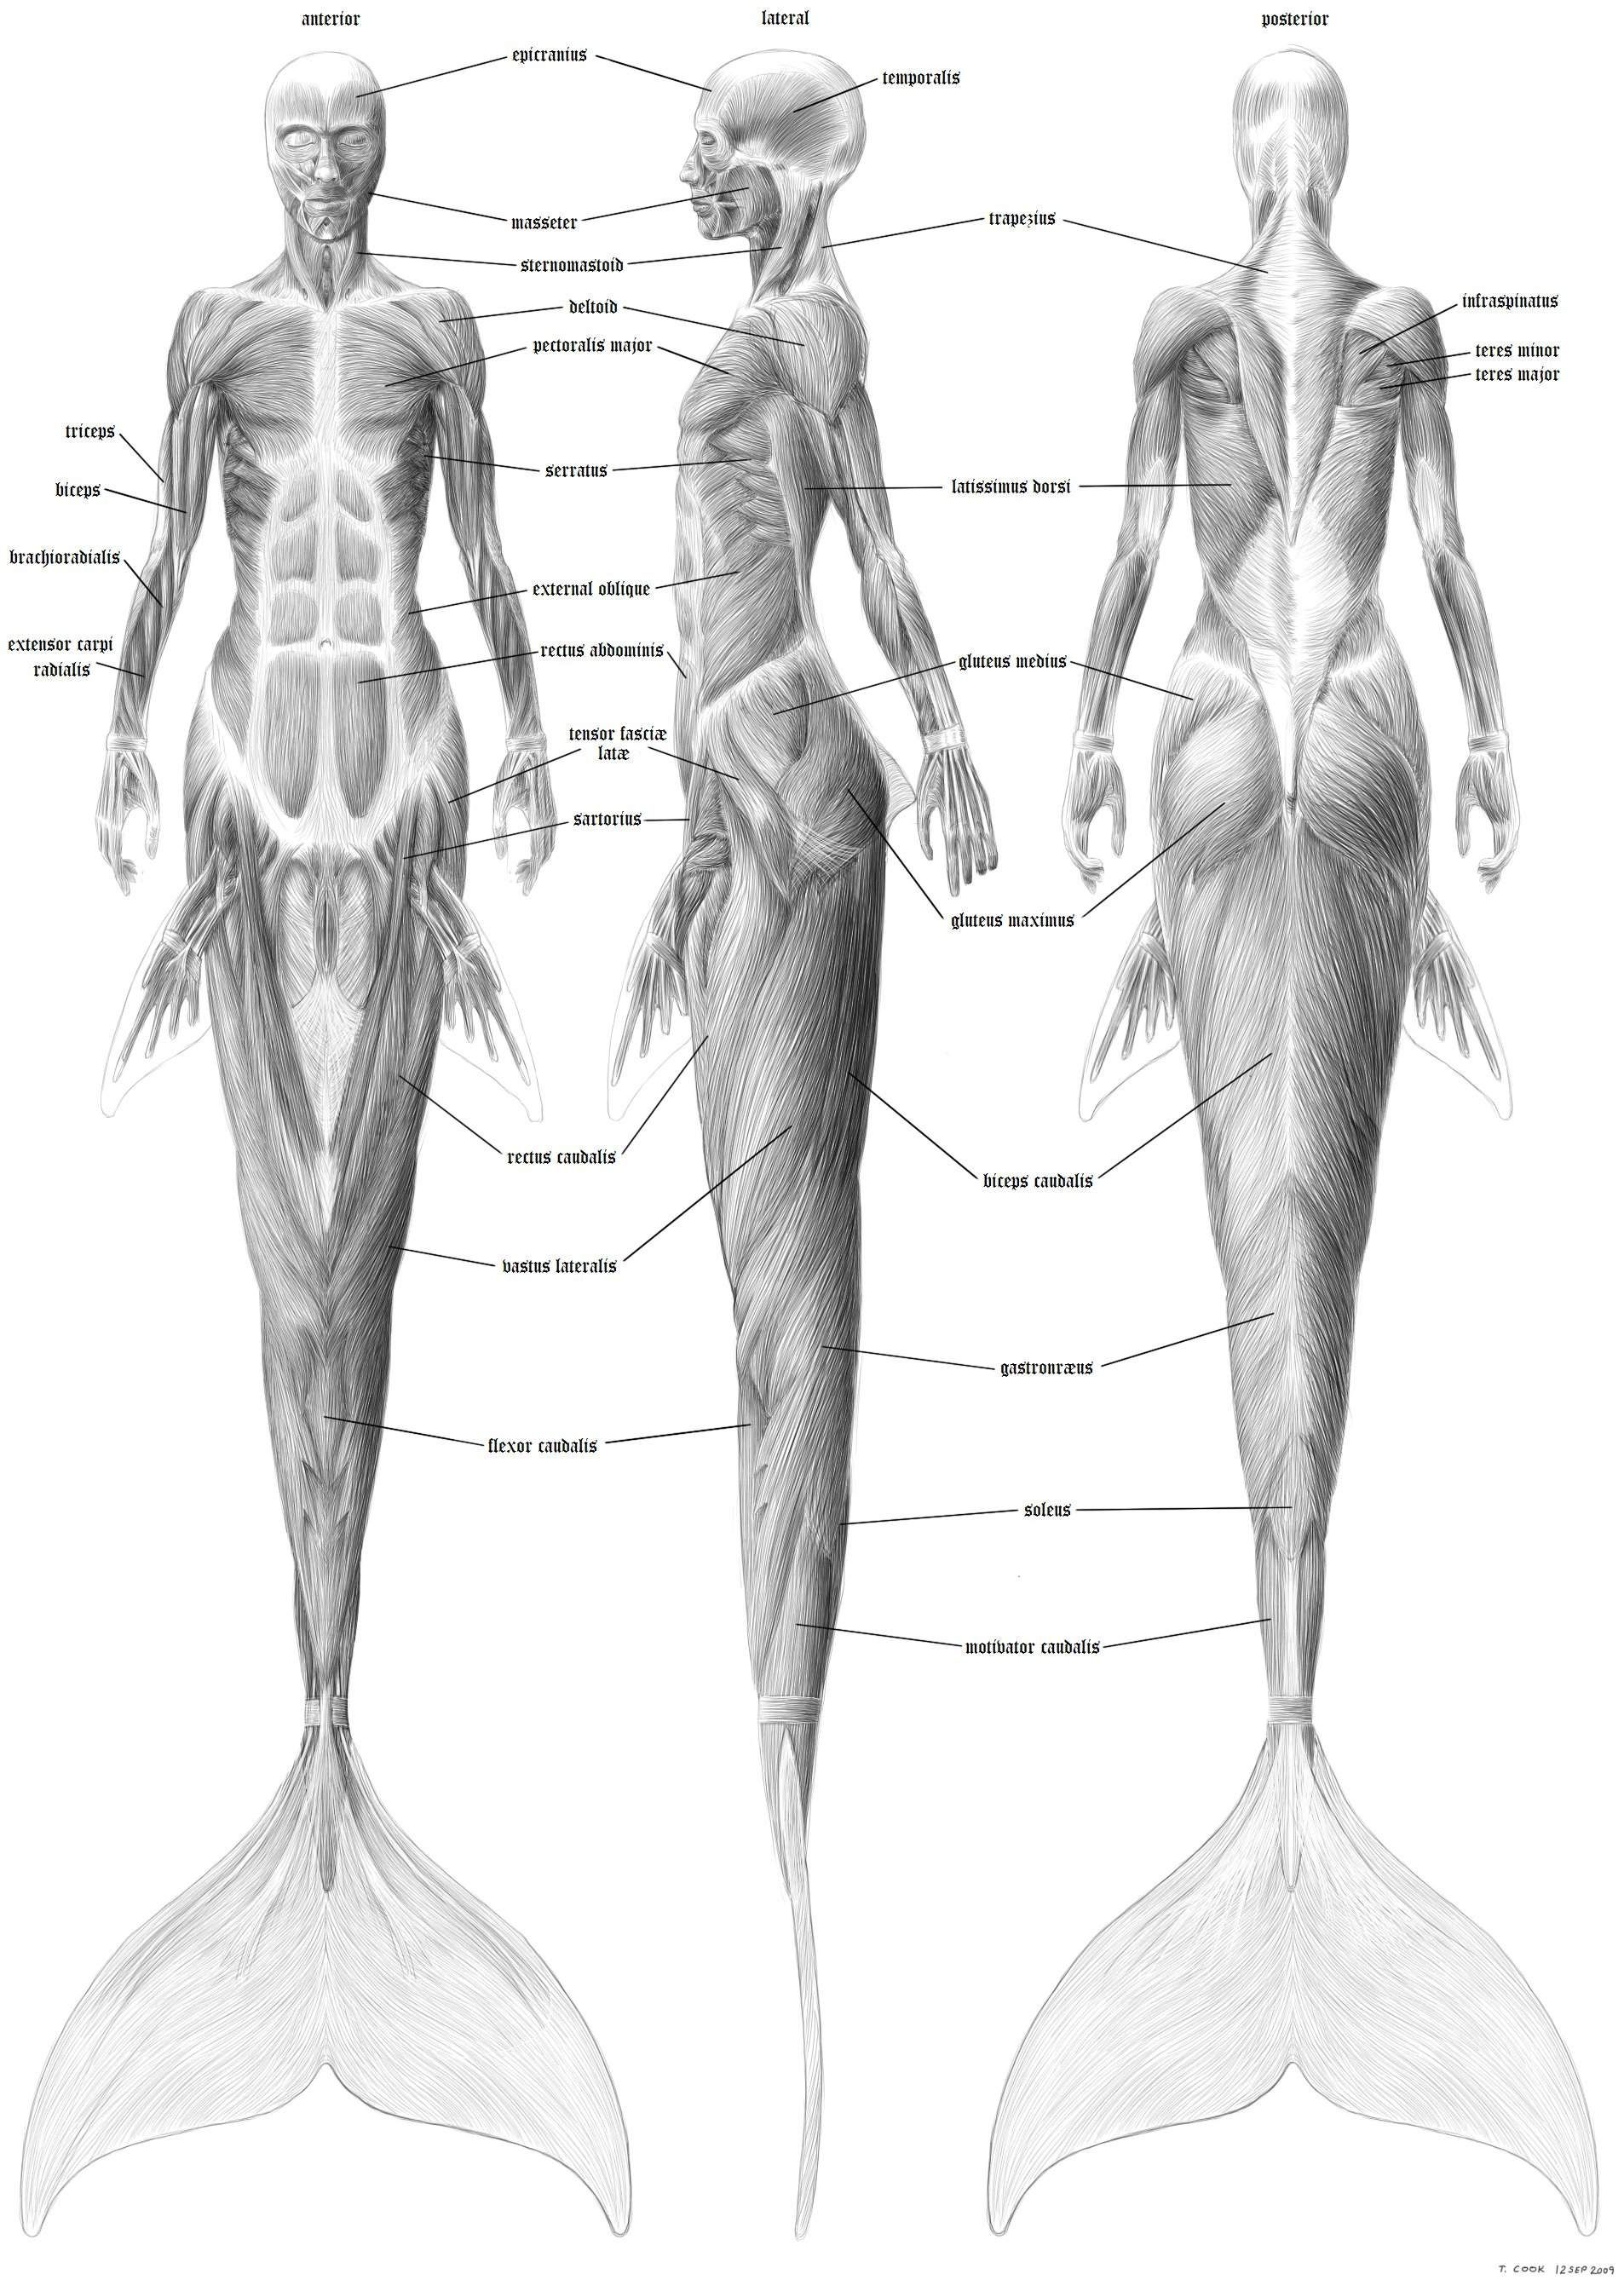 A Gorgeous Dissection of Mermaid Anatomy | Meerjungfrauen ...